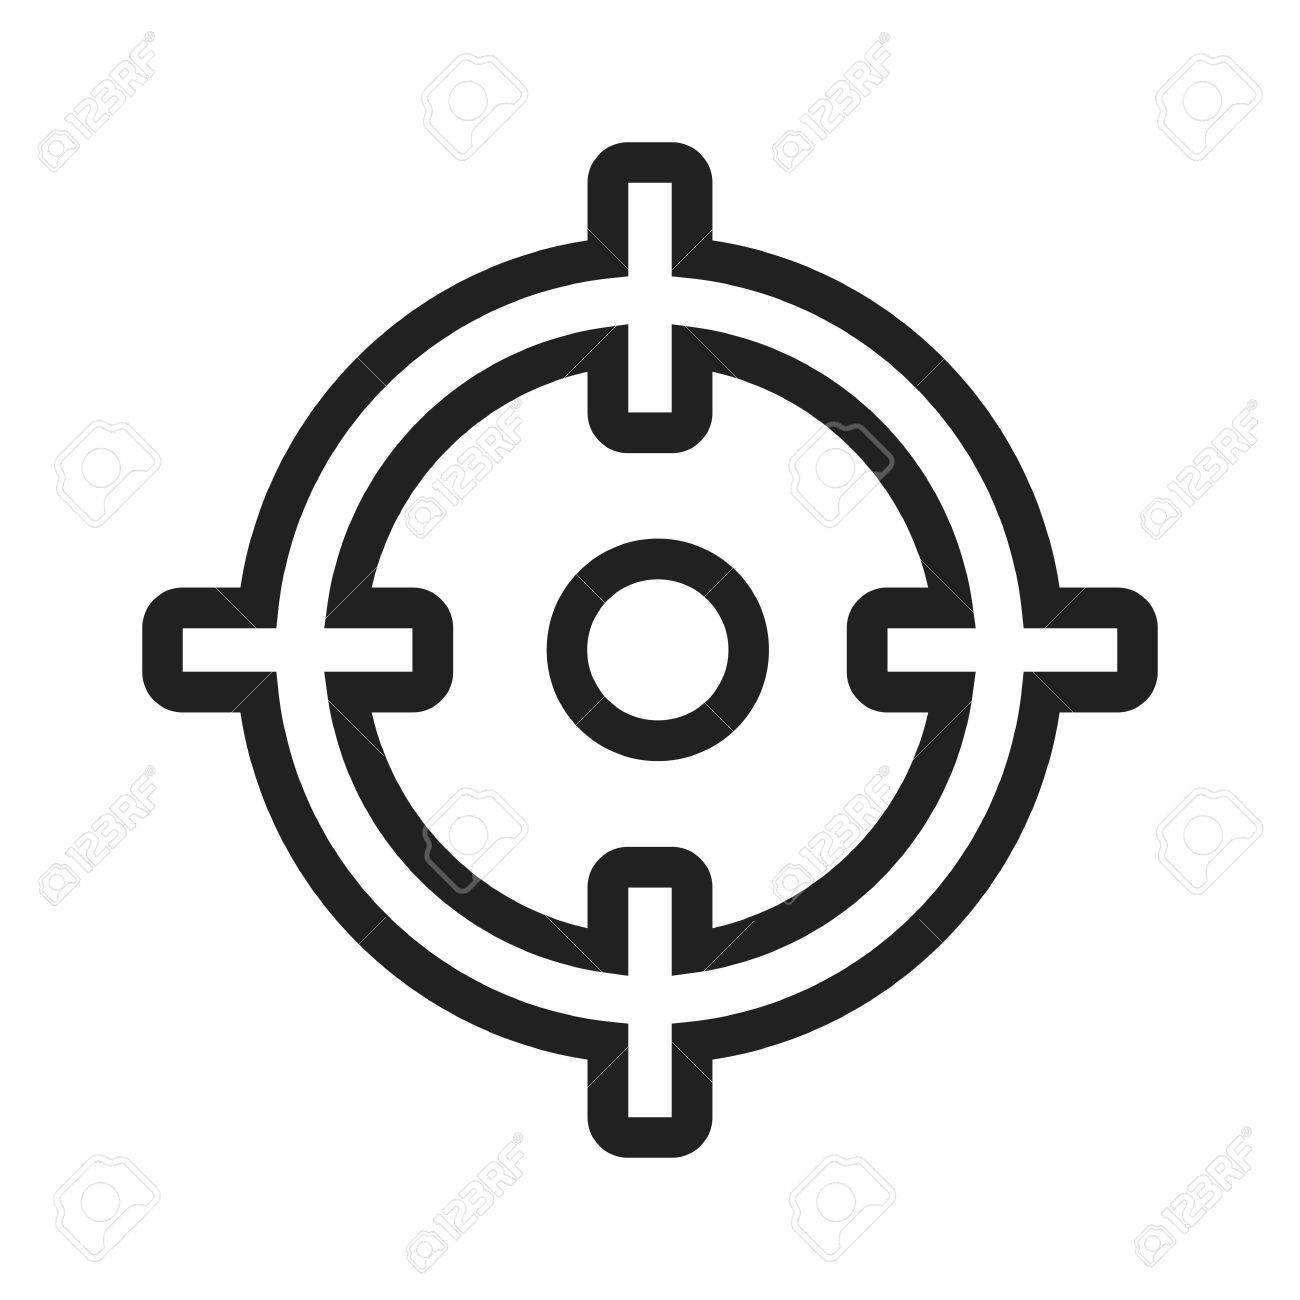 target market aim icon vector image can also be used for seo royalty free cliparts vectors and stock illustration image 42030832 target market aim icon vector image can also be used for seo